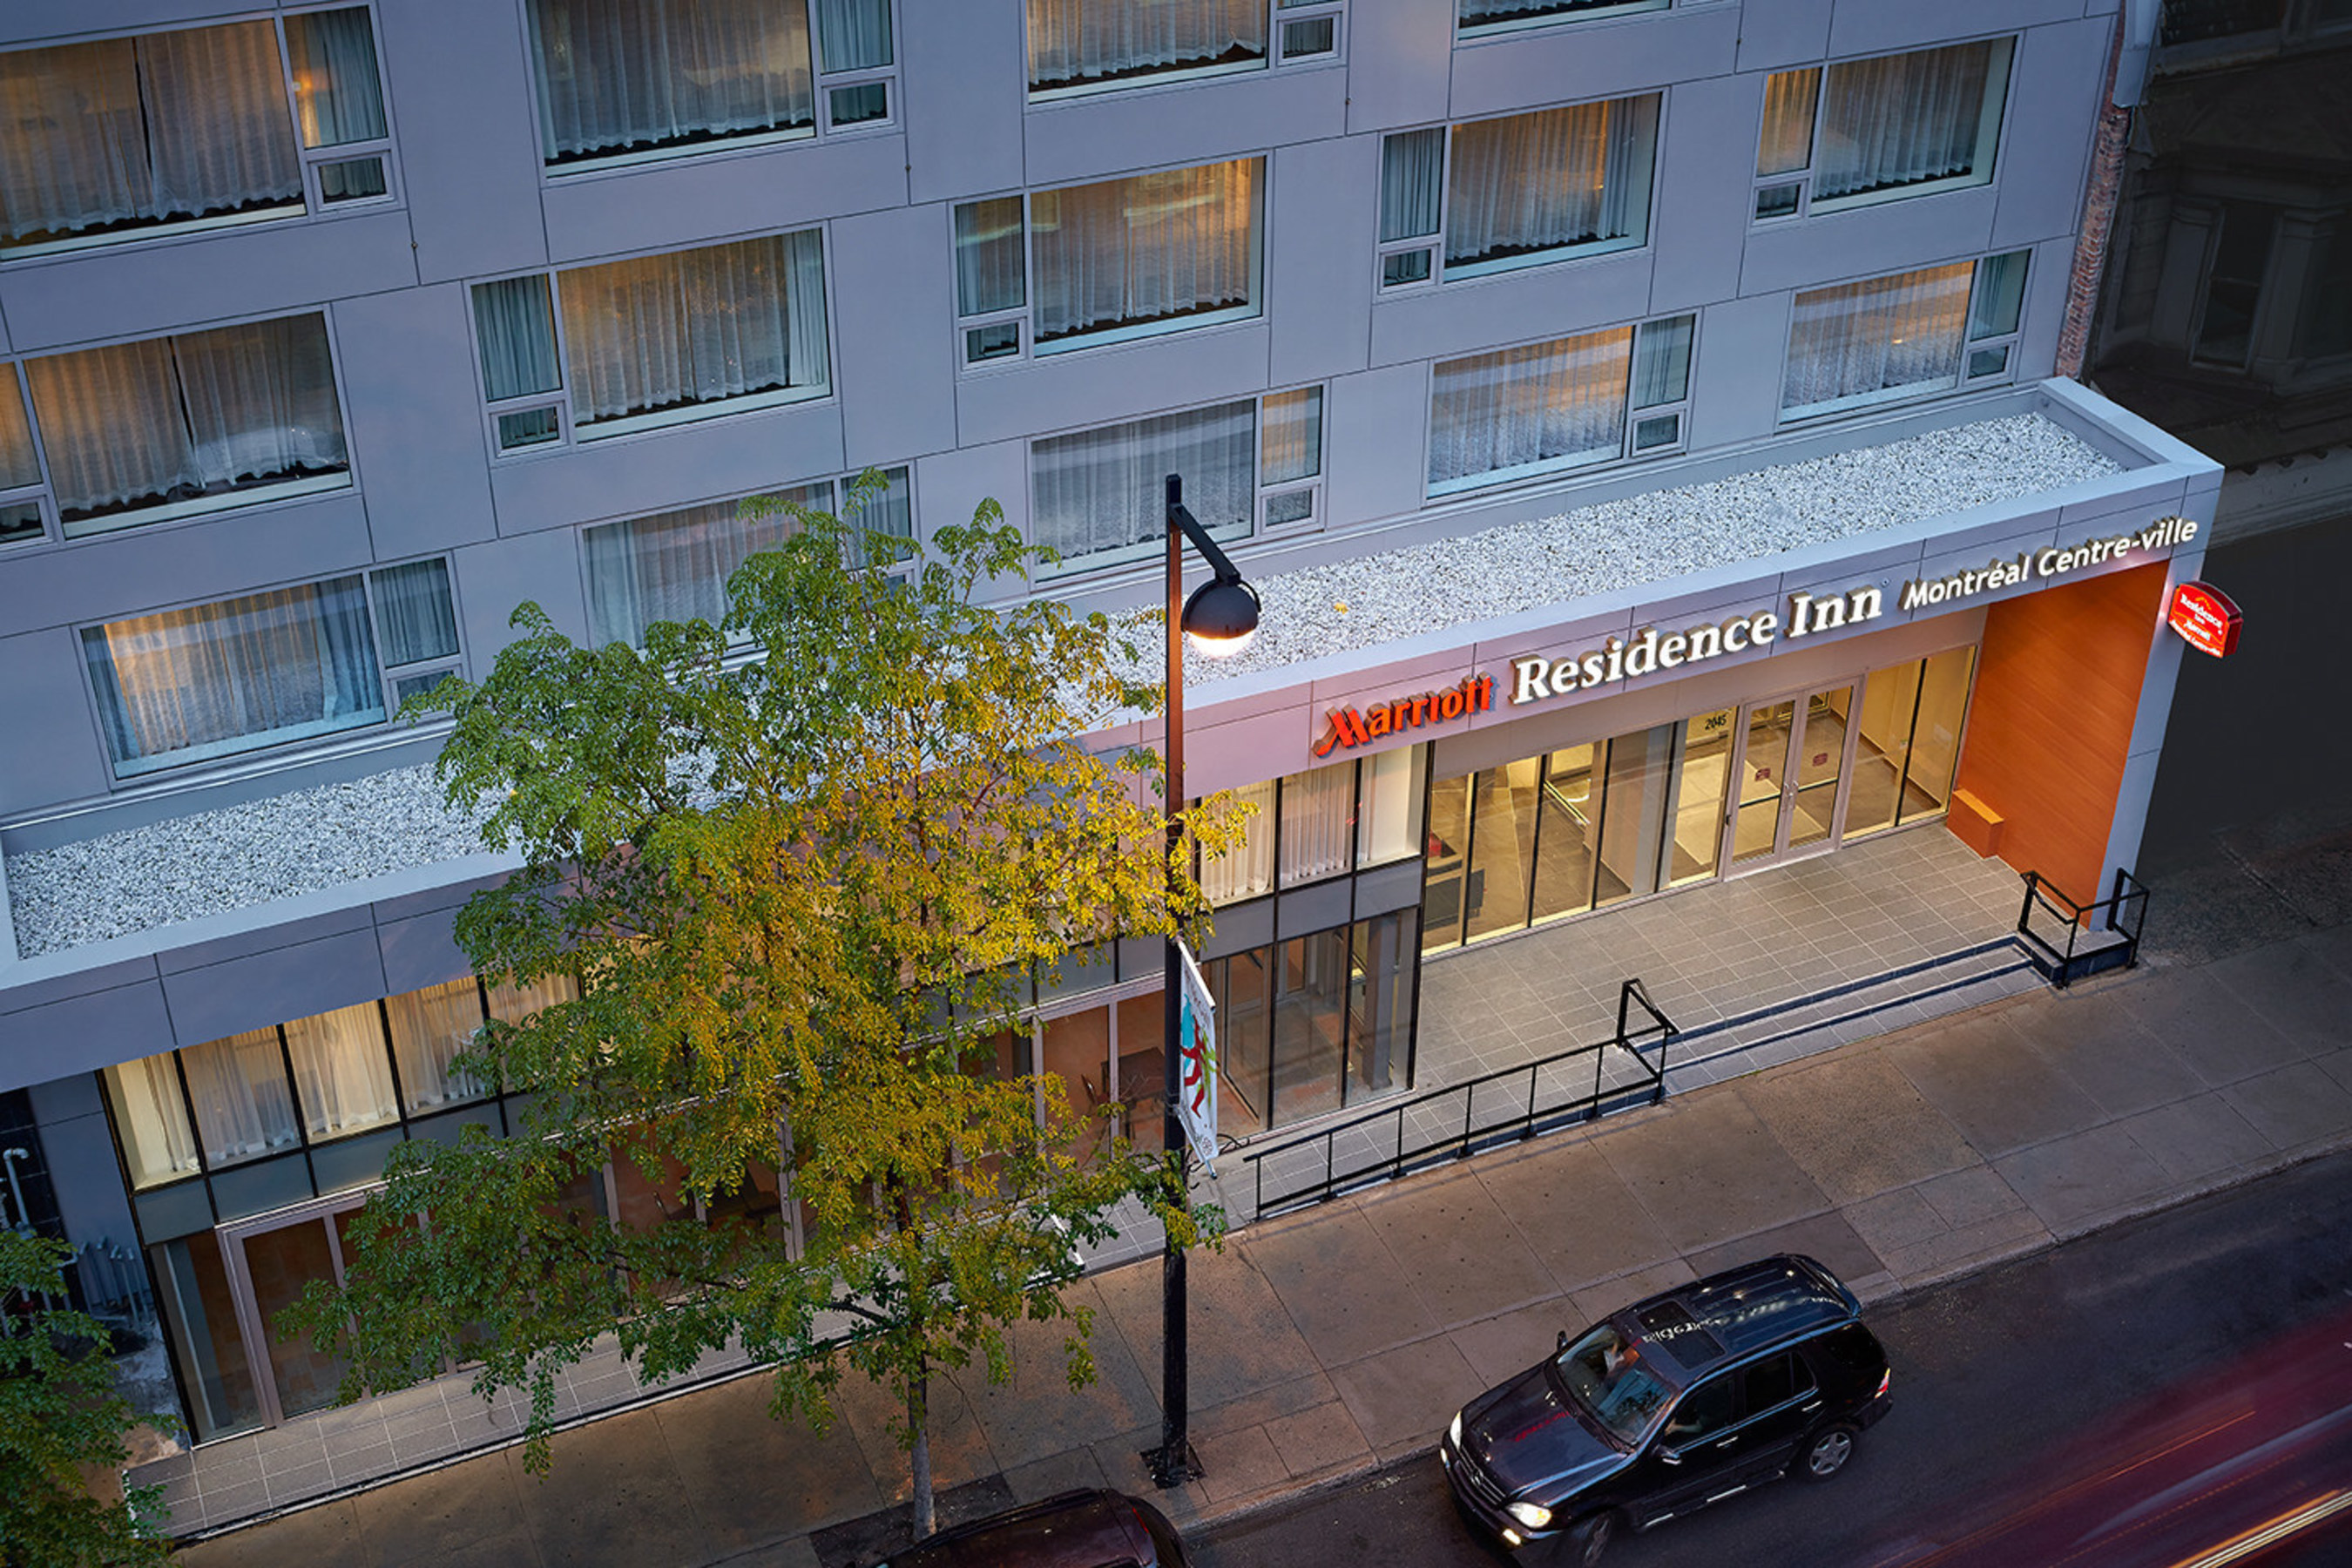 Residence Inn Montreal Downtown re-opens after multi-million dollar renovation